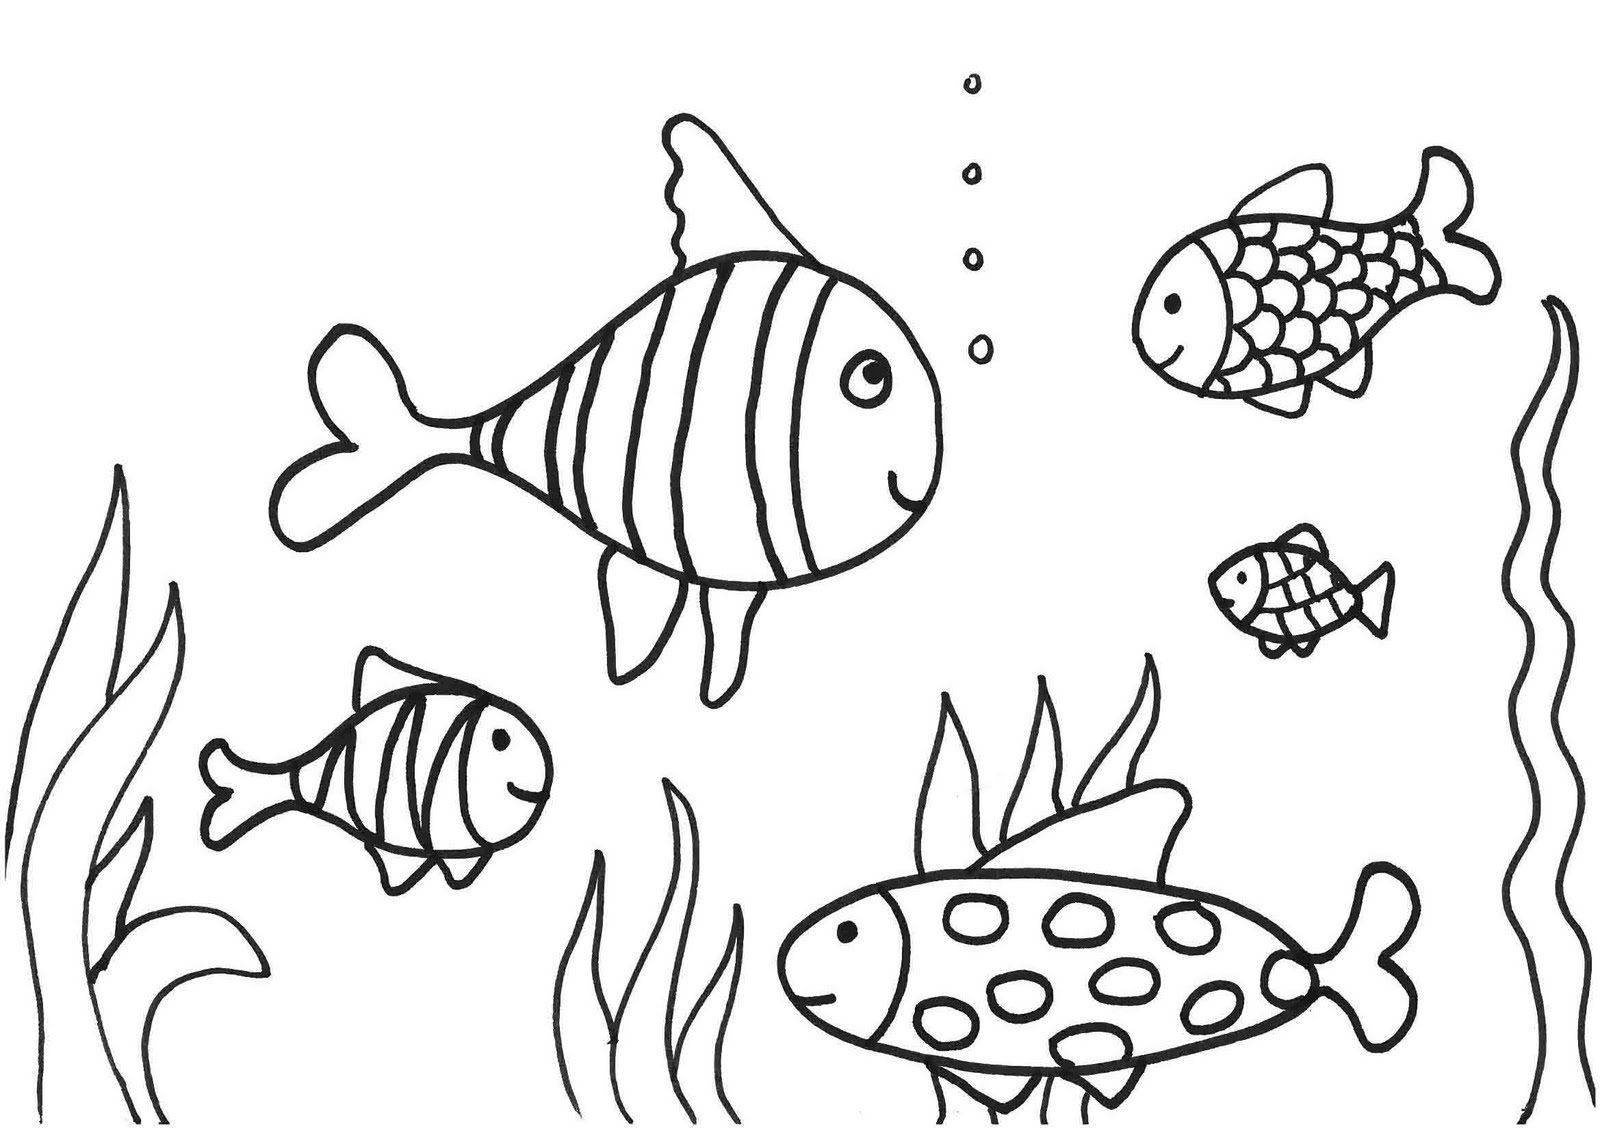 Sea Anemone Coloring Page At Getcolorings